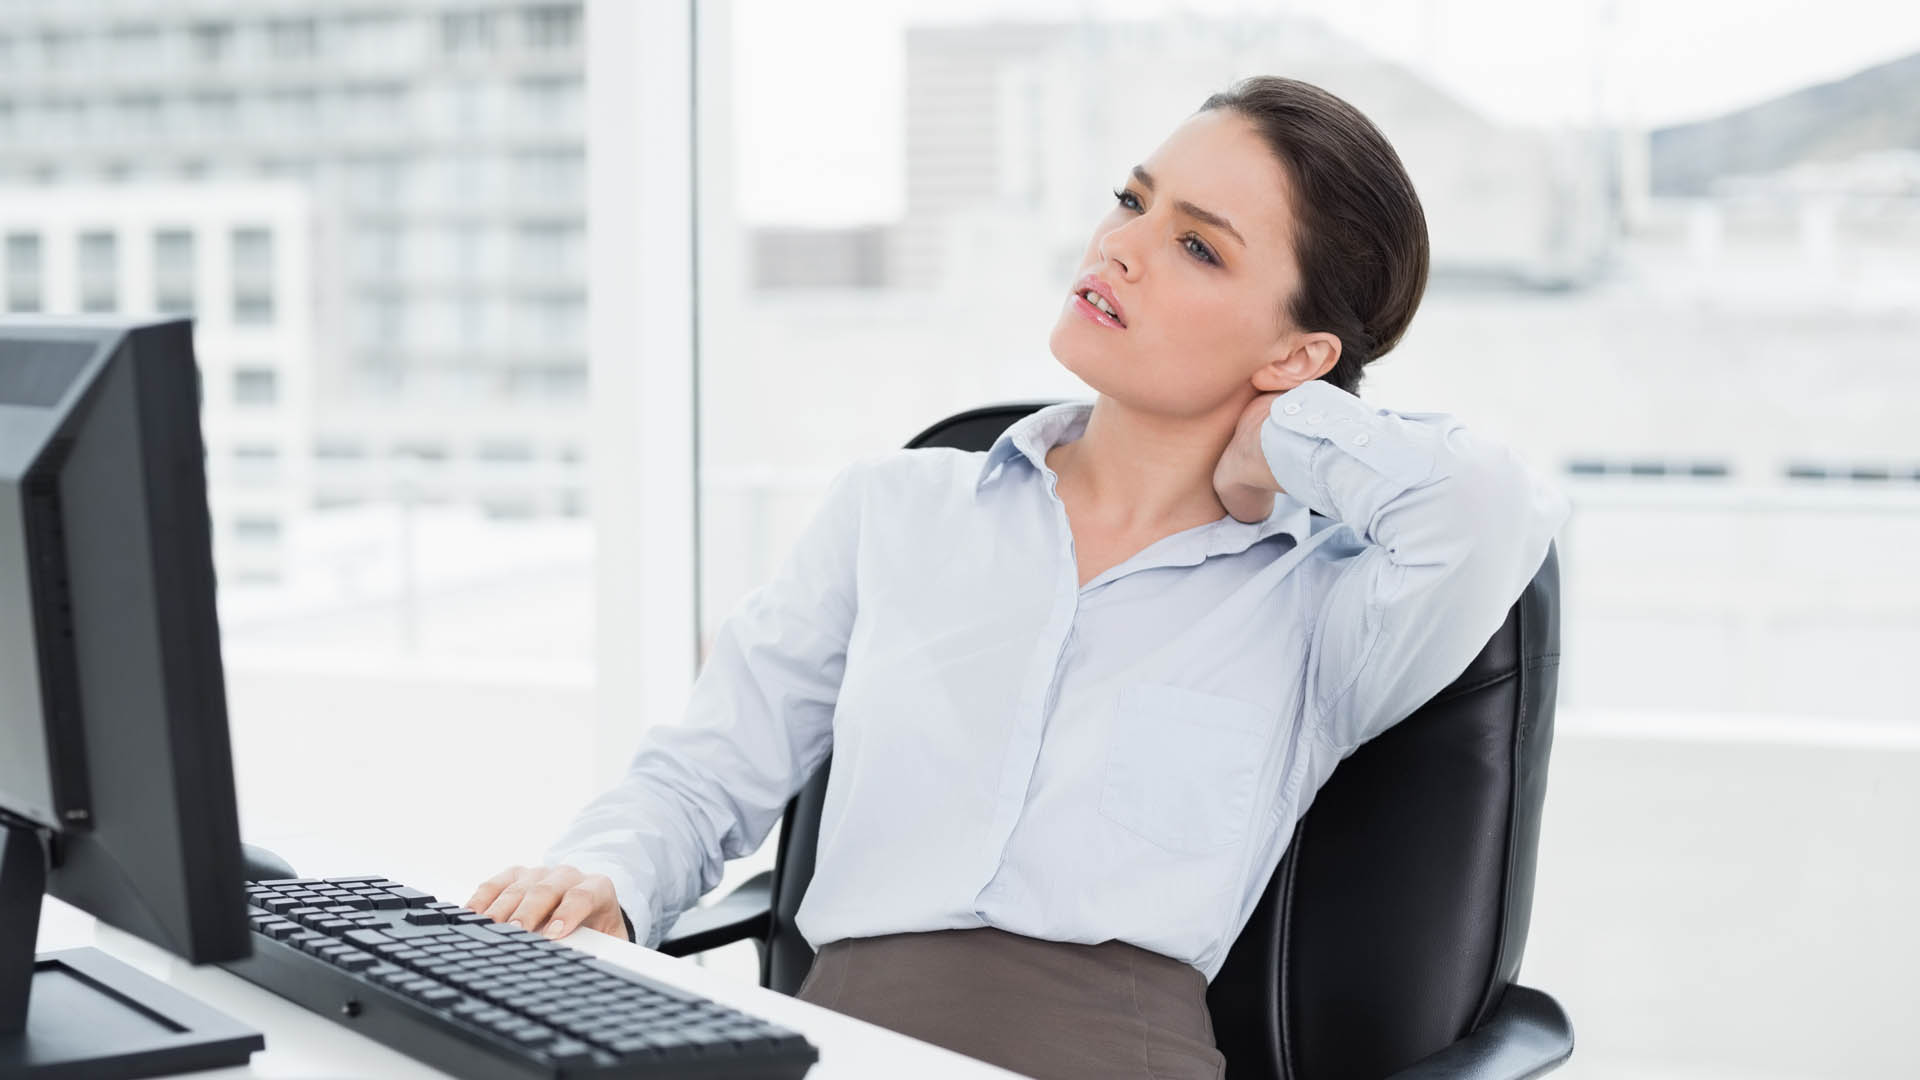 neck pain from sitting